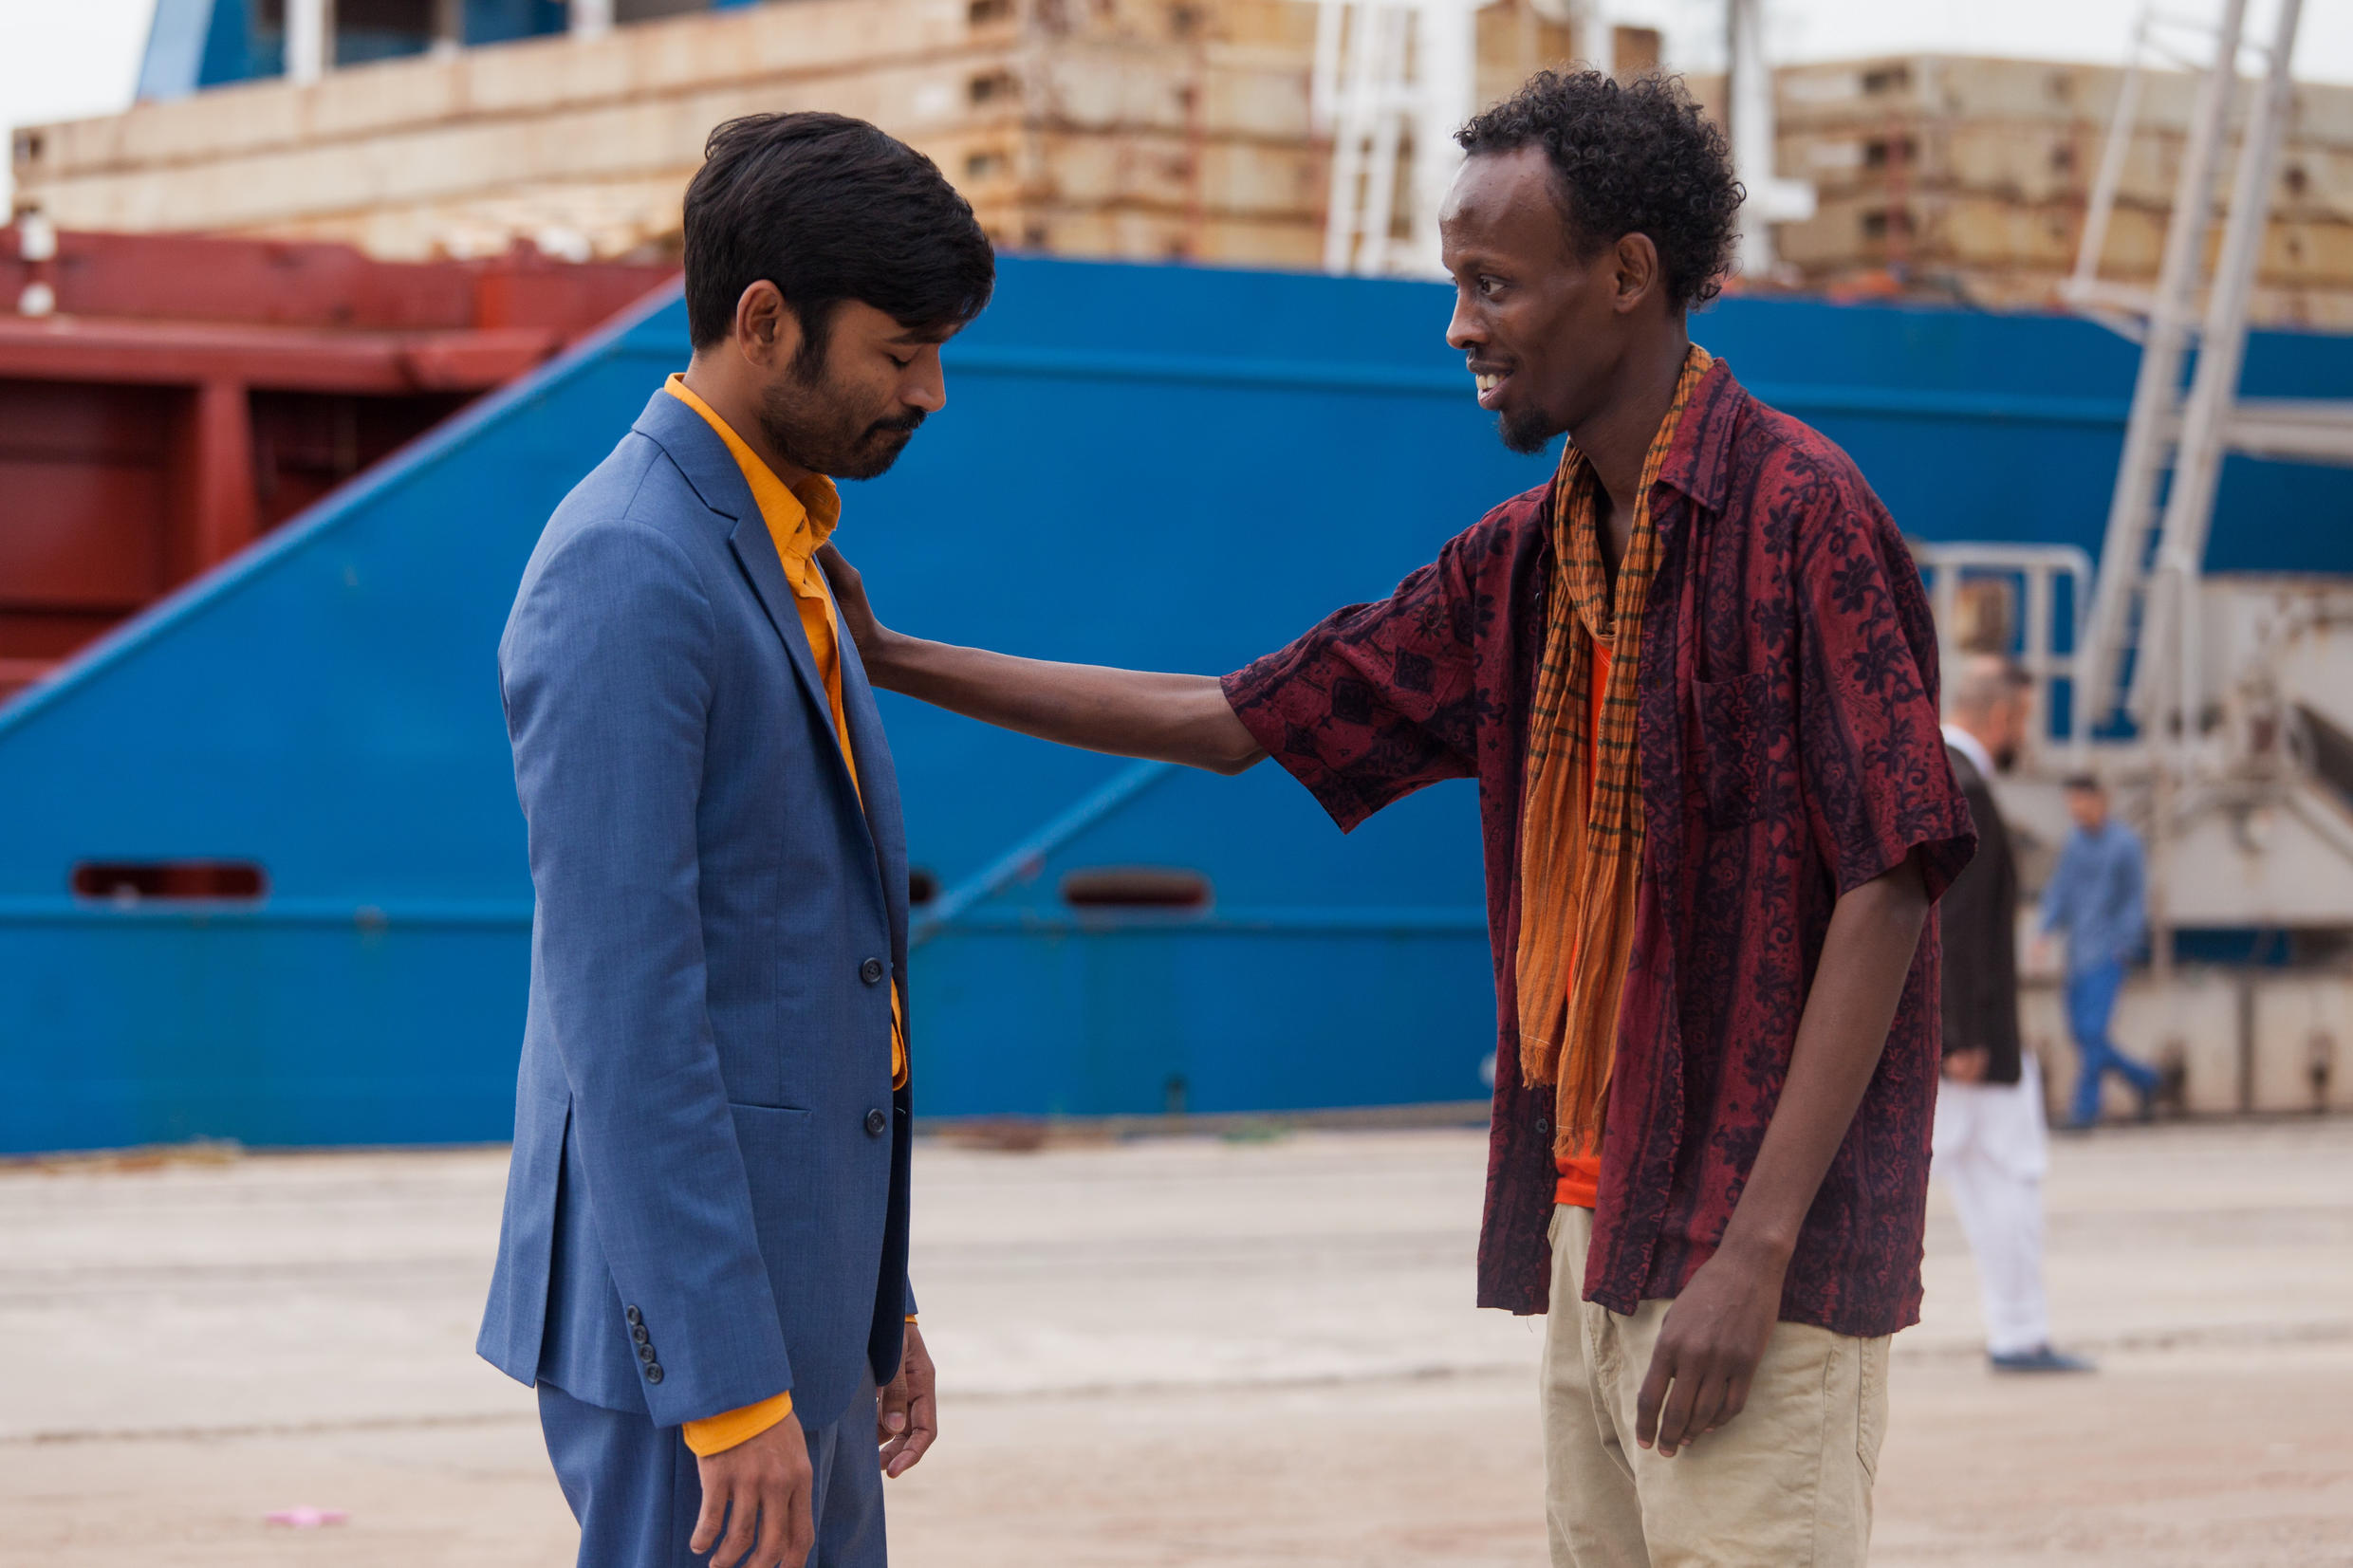 Indian Tamil actor Dhanush and Somali actor Barkhad Abdi share migrant woes and joys in Ken Scott's The Fakir's Extraordinary Voyage, Le Voyage Extraordinaire du Fakir